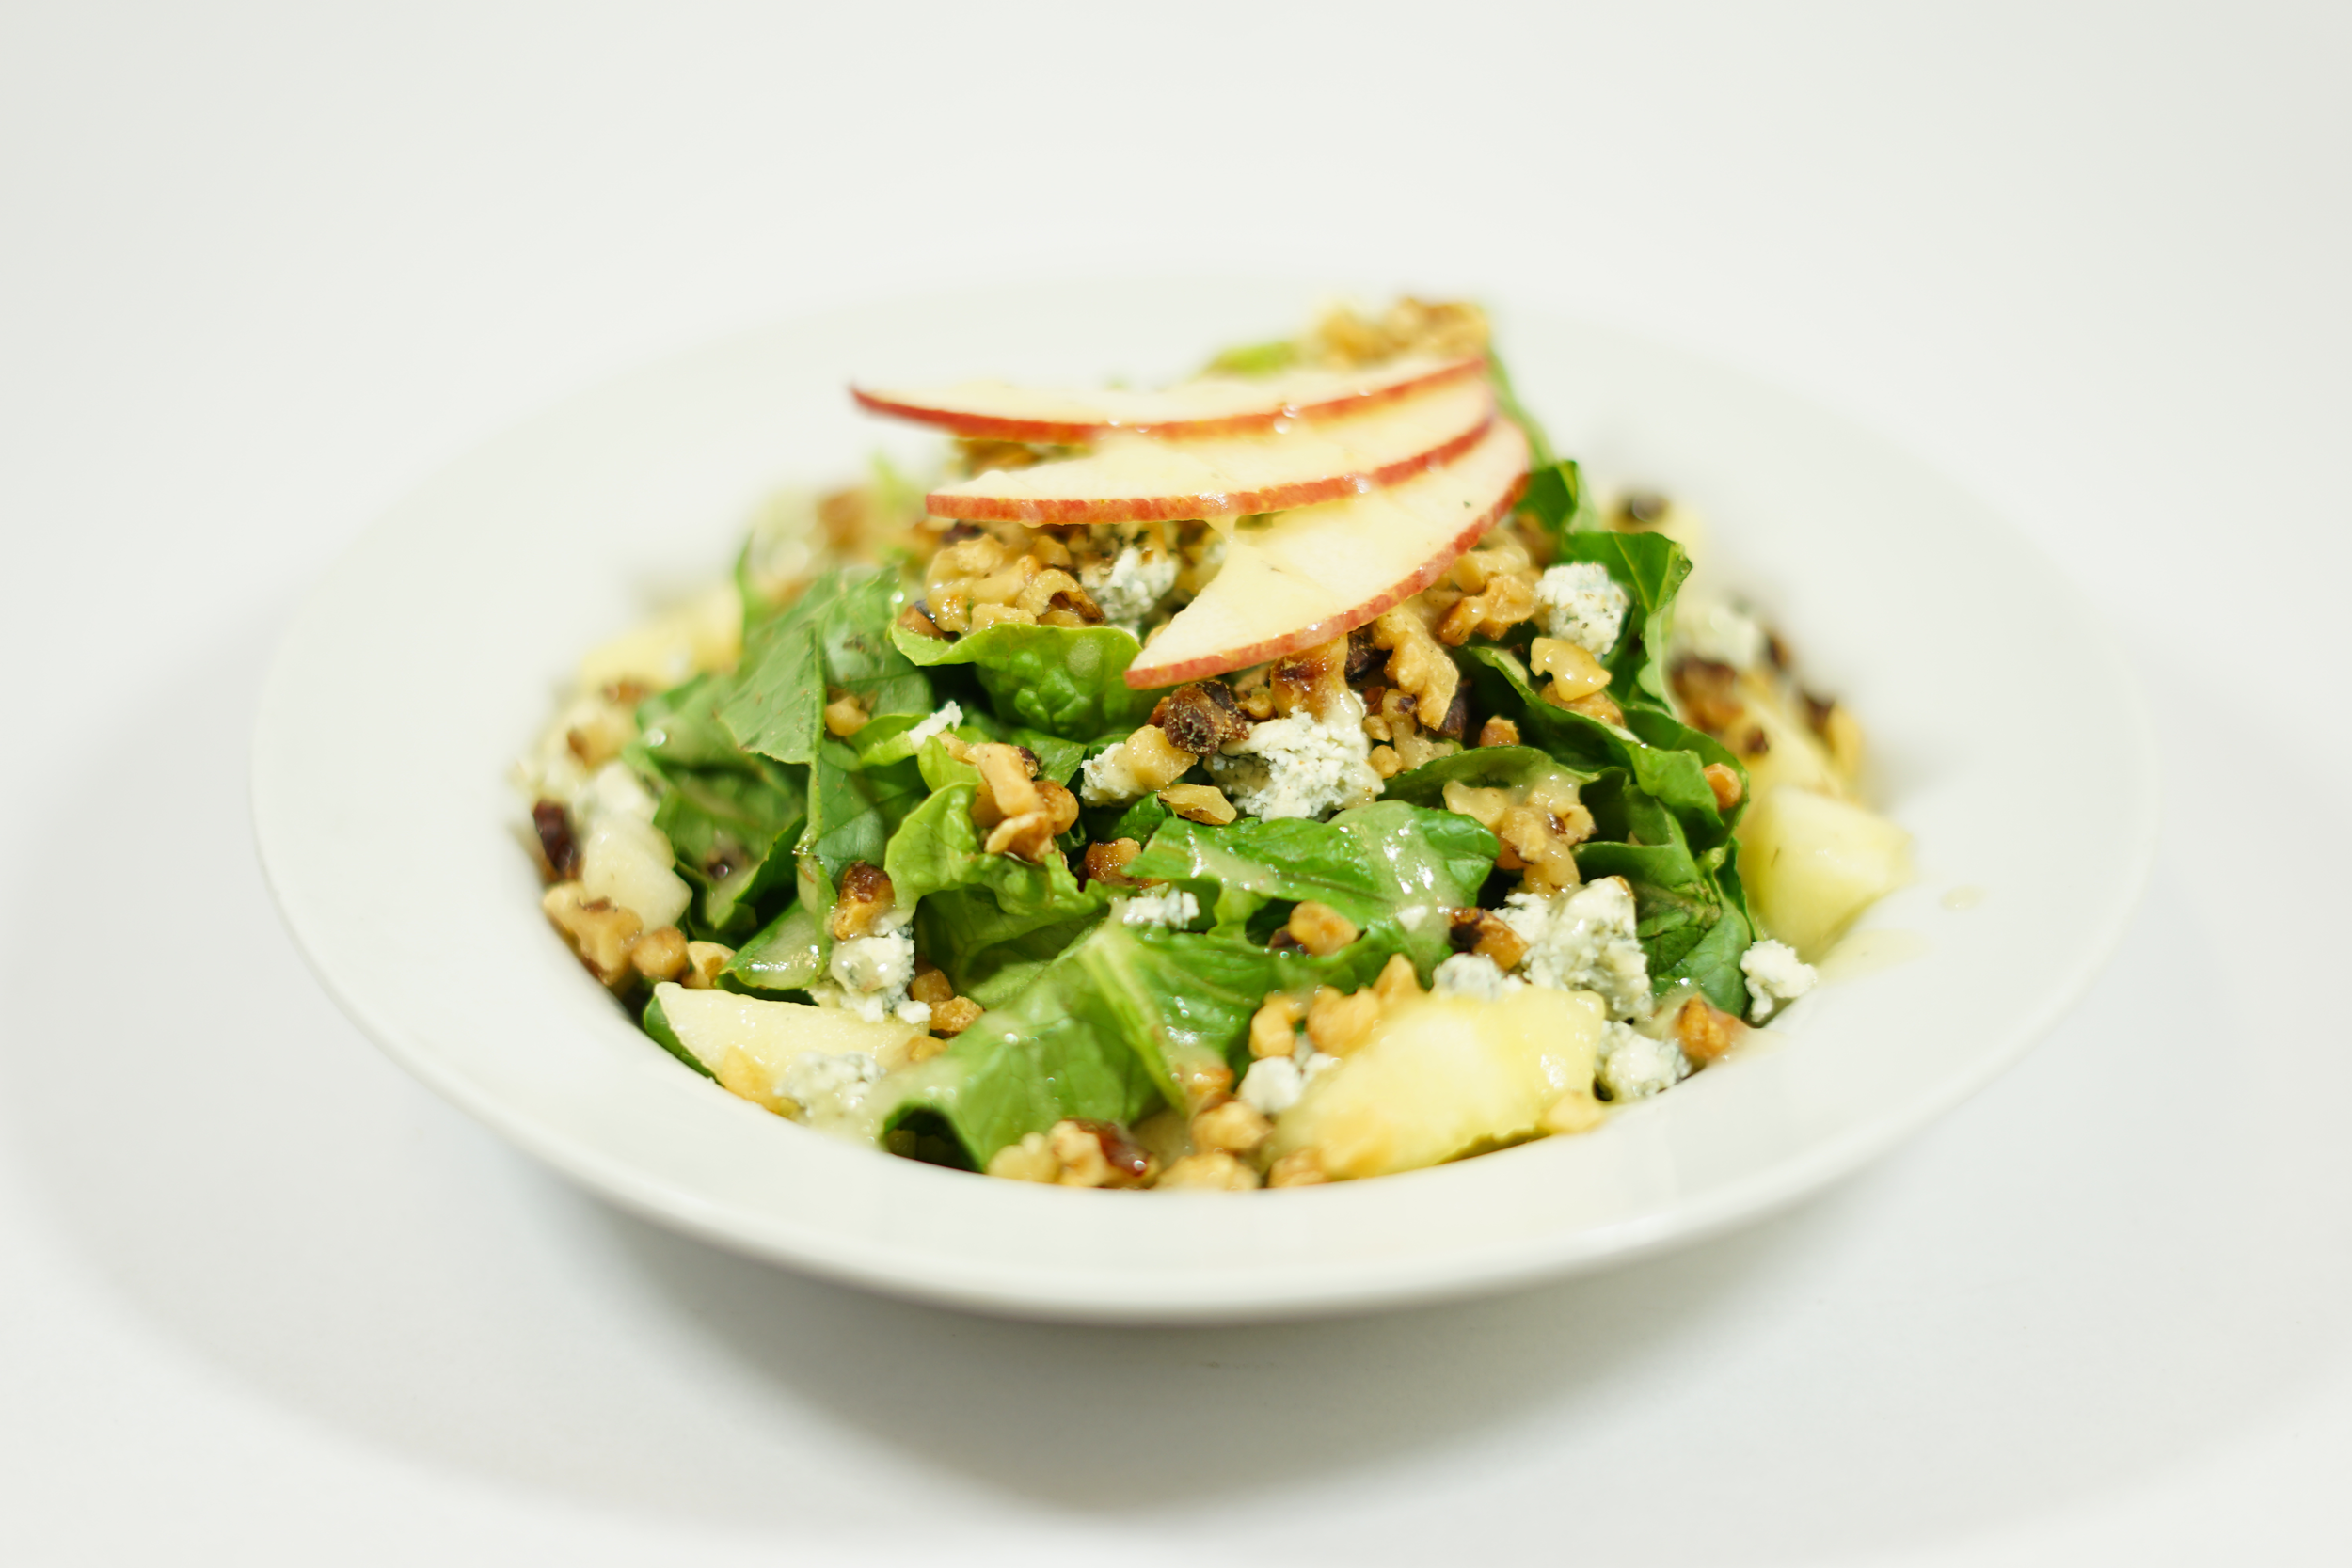 Apple Walnut - Apple vinaigrette dressing tossed with a bed of romaine lettuce, topped with chopped Fuji apples, crumbled bleu cheese, and roasted walnuts.